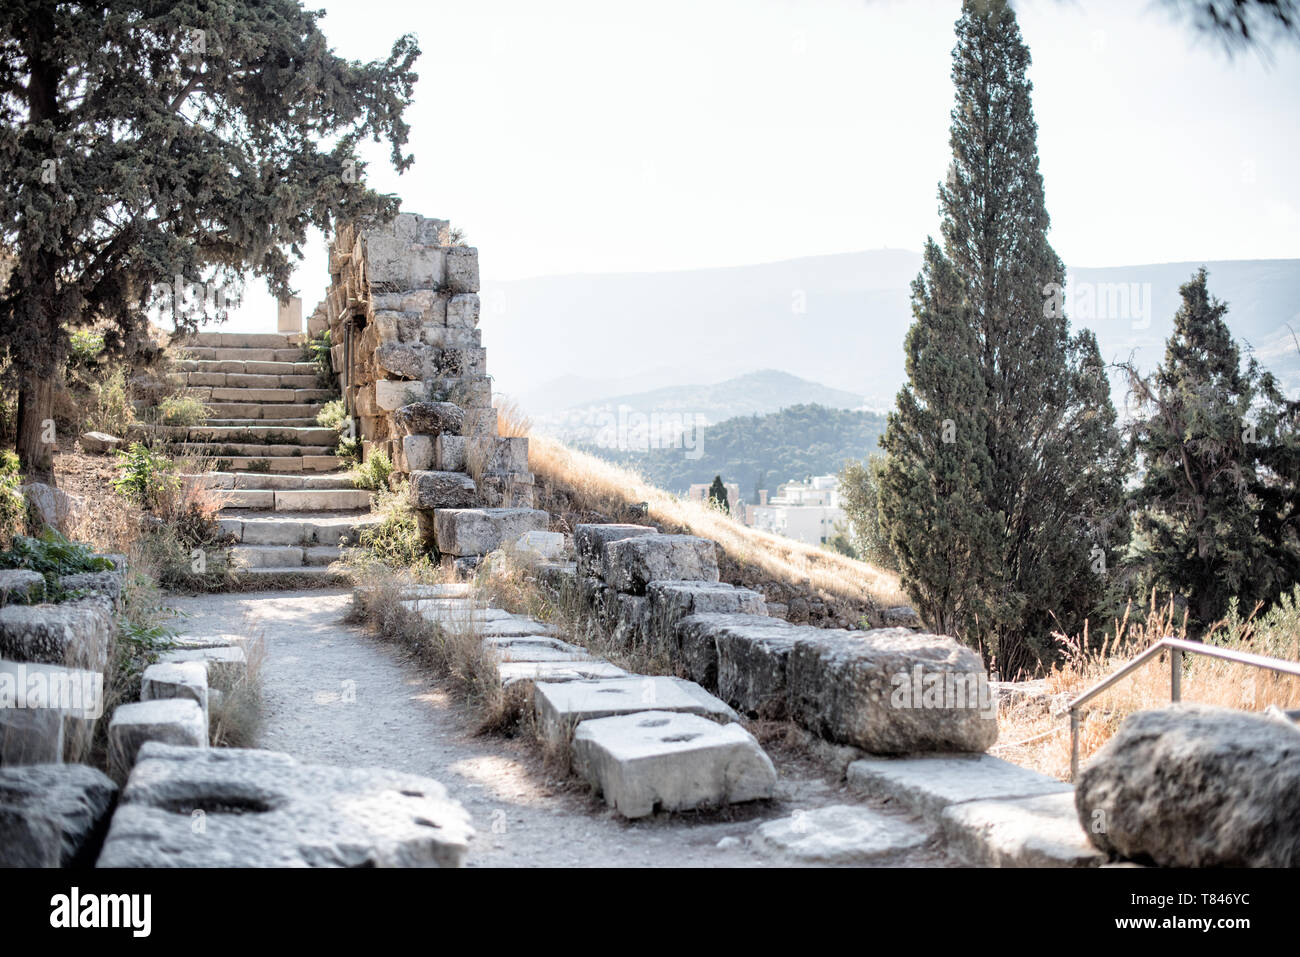 The site of an ancient bronze foundry of the hill slopes below the Acropolis of Athens. The Acropolis is an ancient citadel standing on a rocky outcro - Stock Image